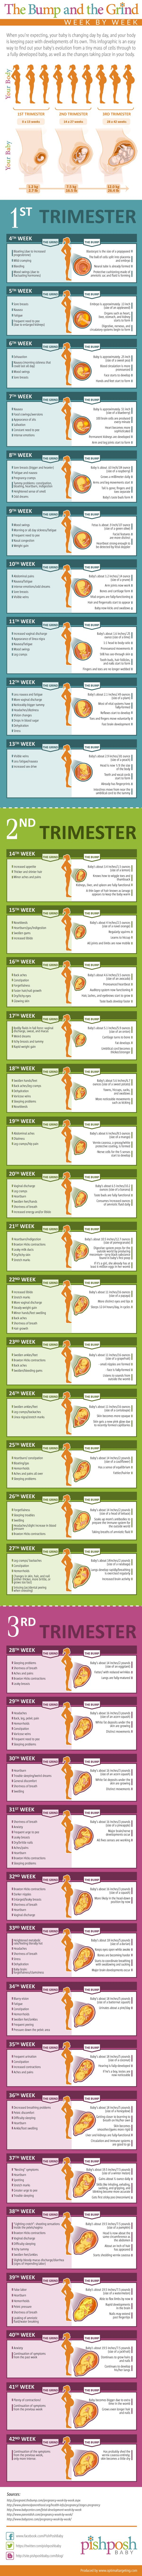 Get Free Printable Pregnancy Week By Week Chart Pictures for Printable Pregnancy Calendar Week By Week